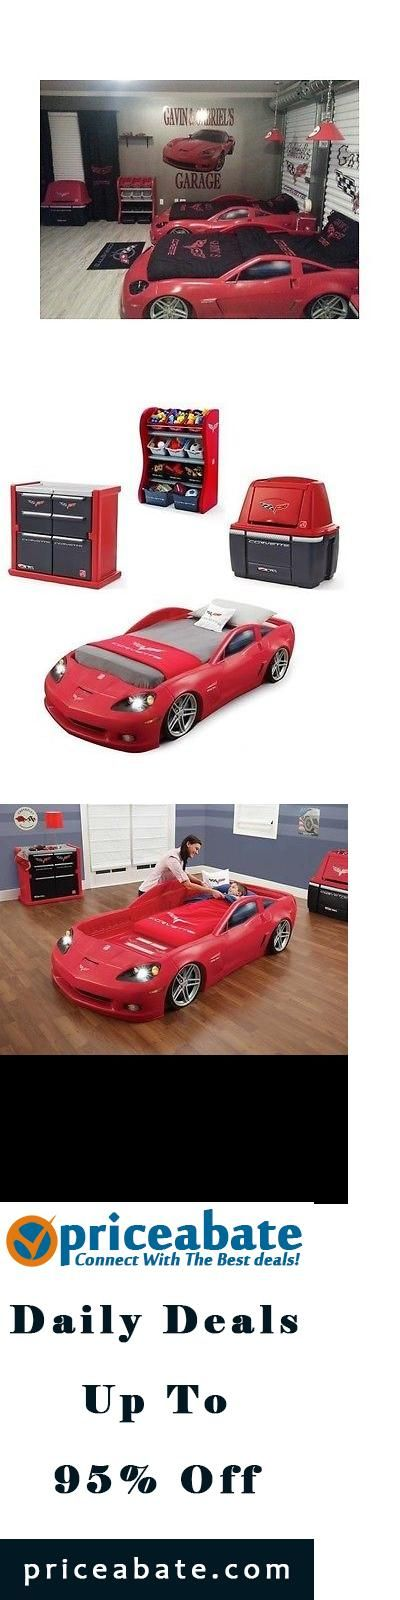 #Priceabate Corvette Bedroom Set Bed Race Car Dresser Storage Chest Organizer Kids Toddler - Buy This Item Now For Only: $764.95